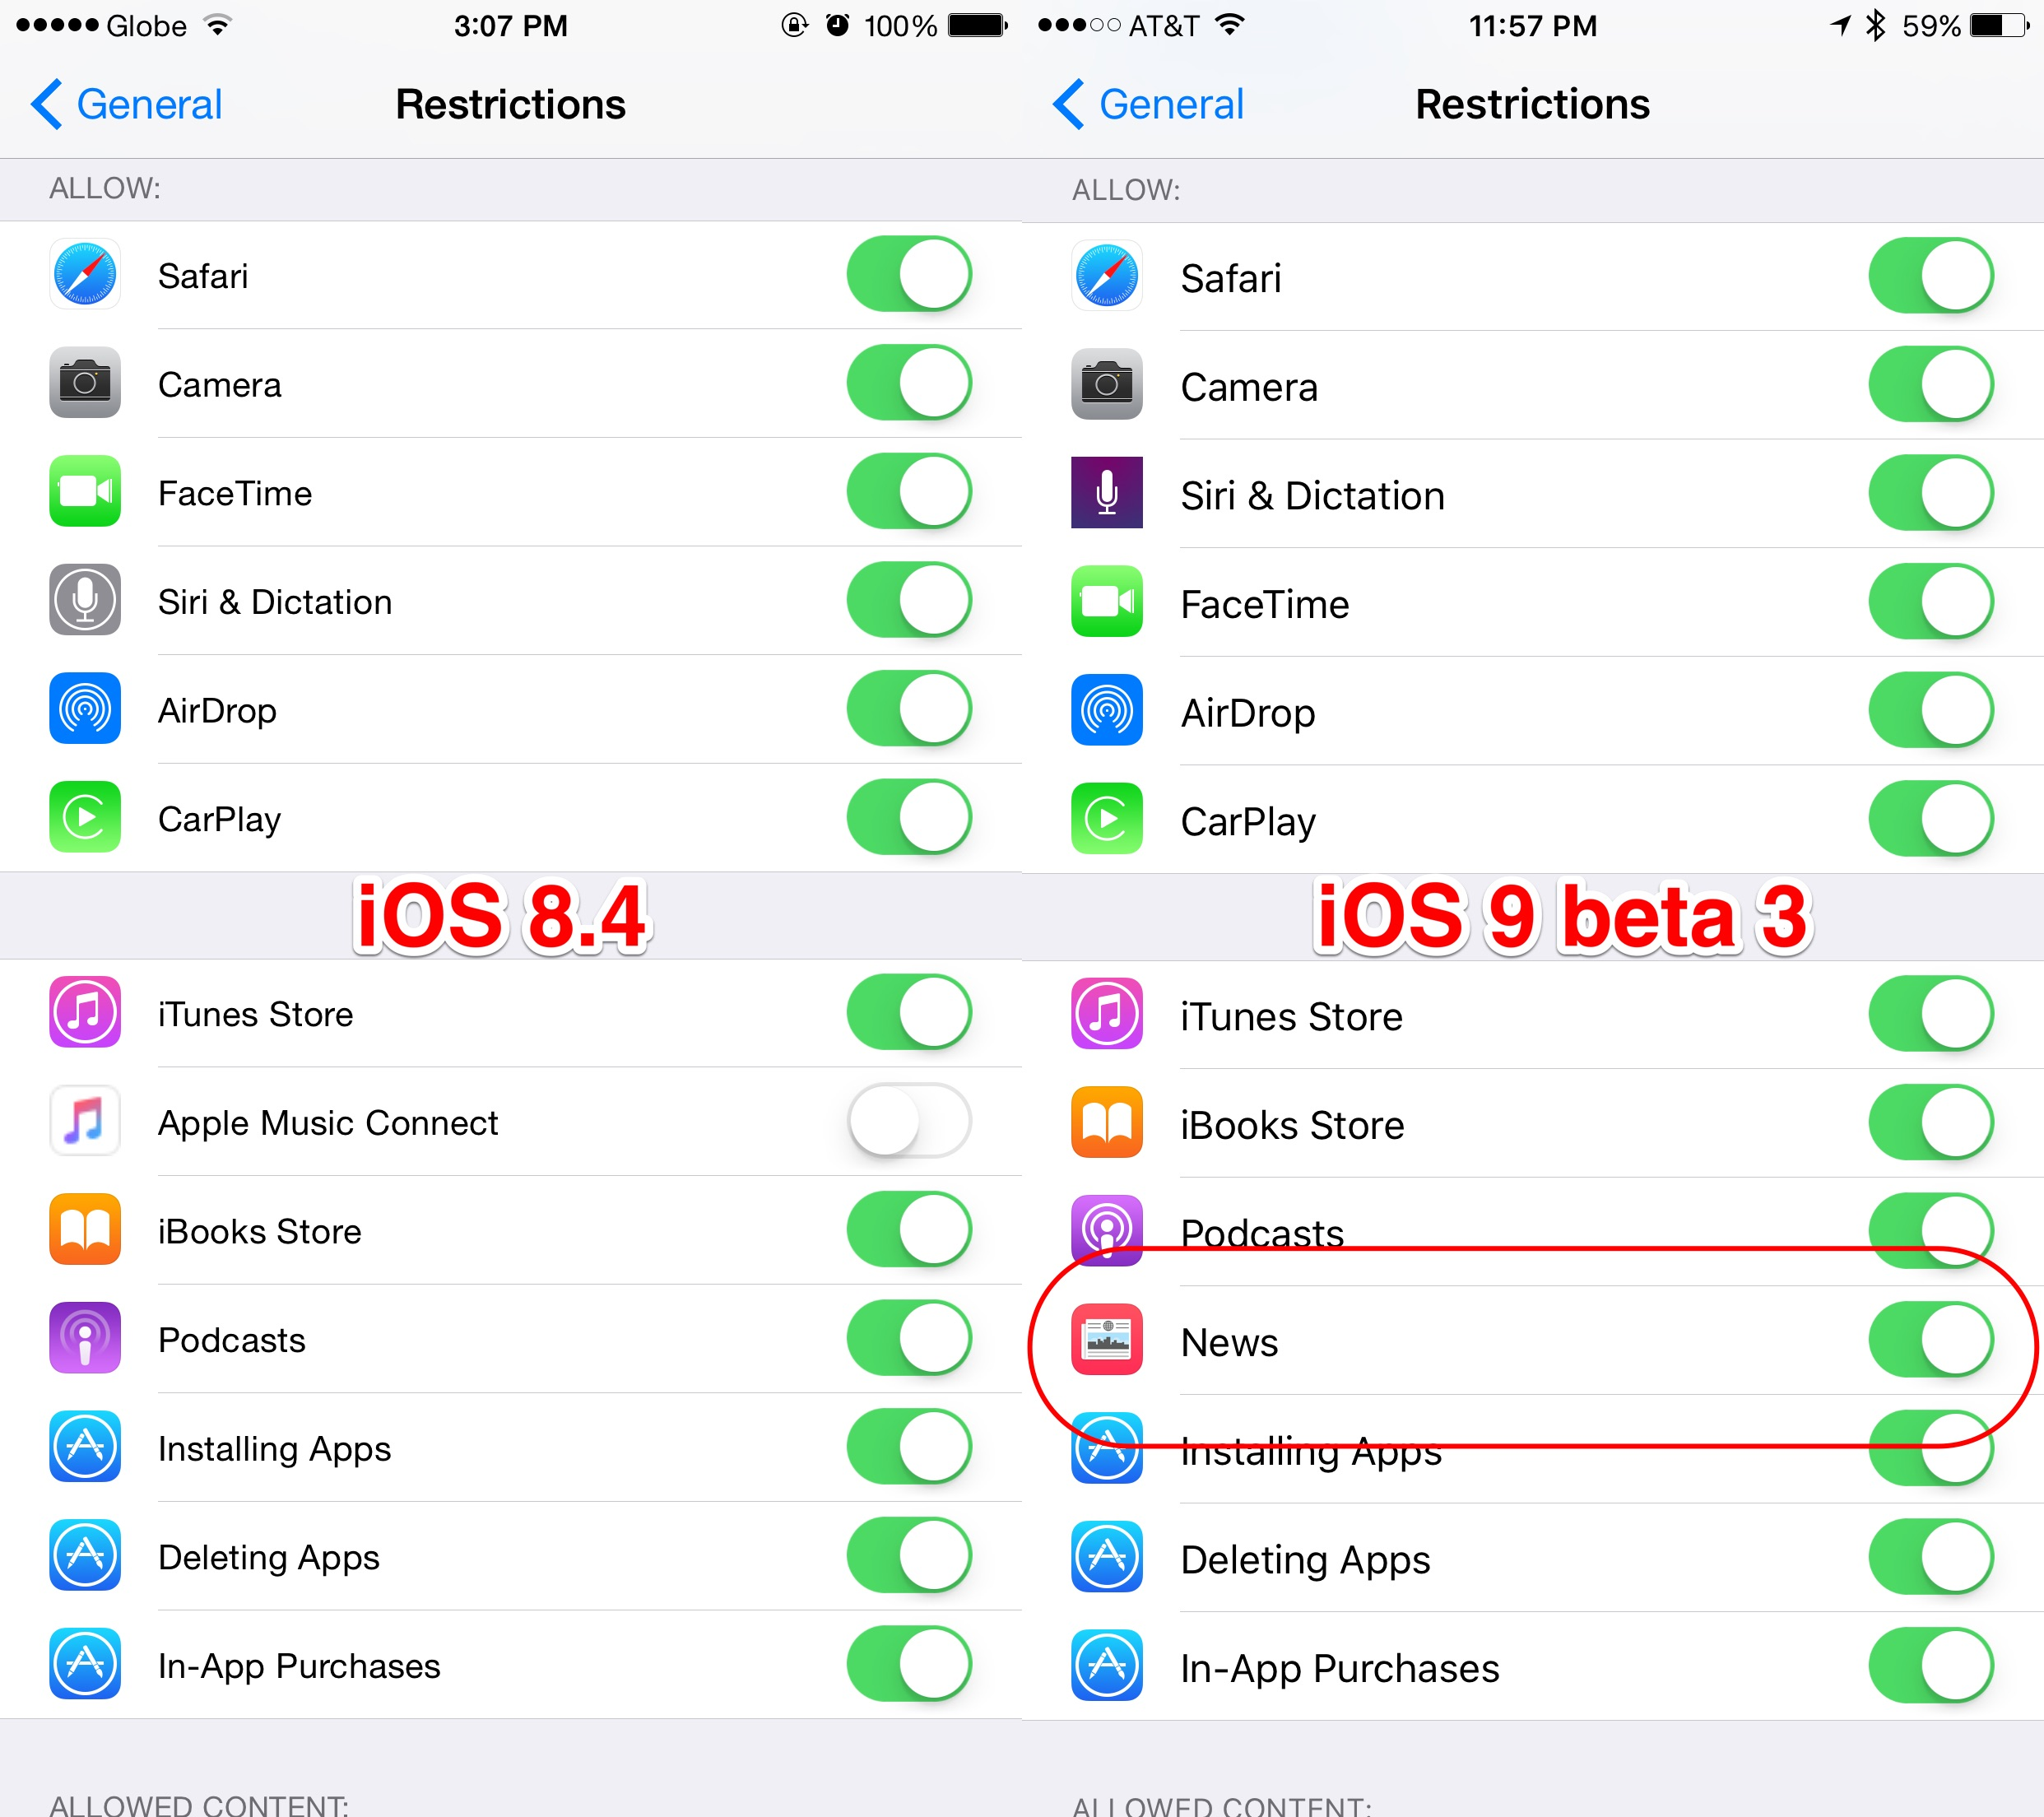 A new option for disabling News can be found in iOS 9 beta 3.